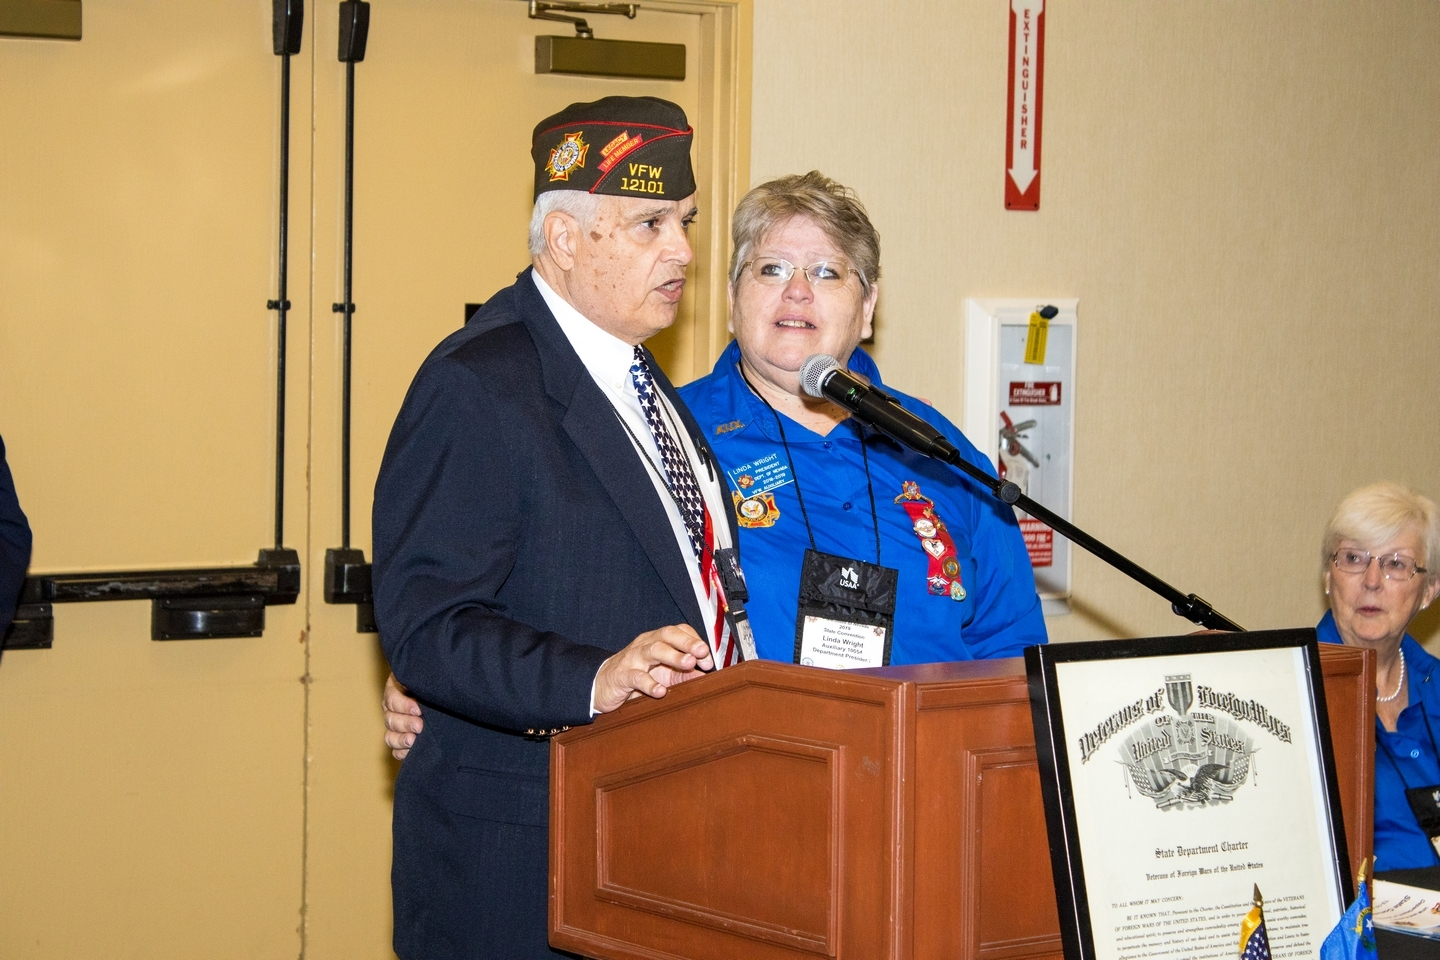 Outgoing State Commander Jerry Peterson and Outgoing State Auxiliary President Linda Wright